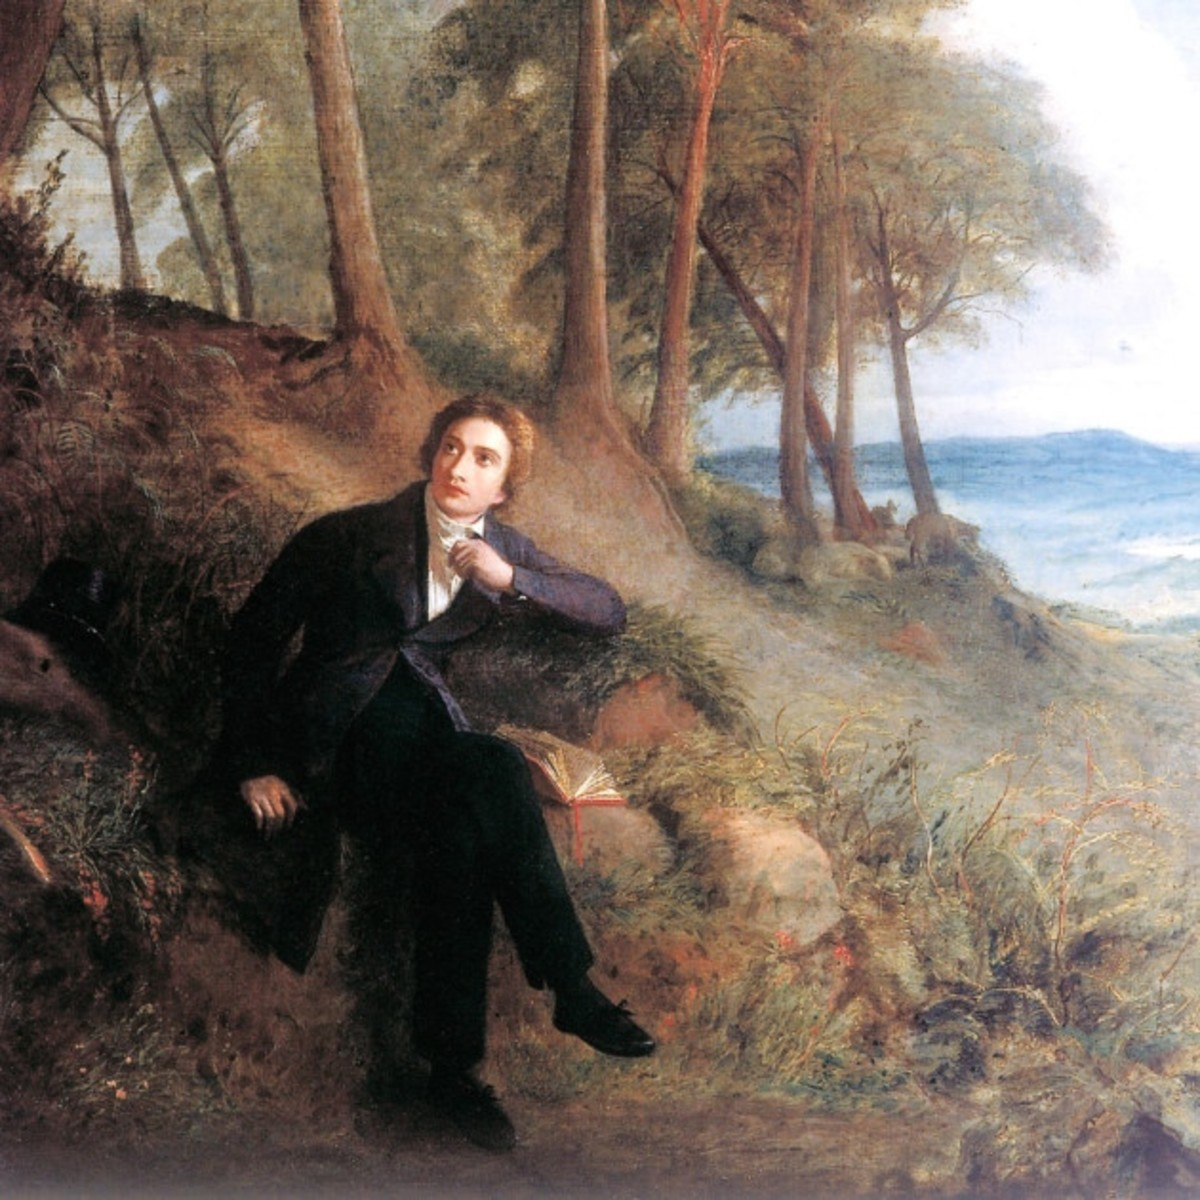 john keats in drear nighted december owlcation